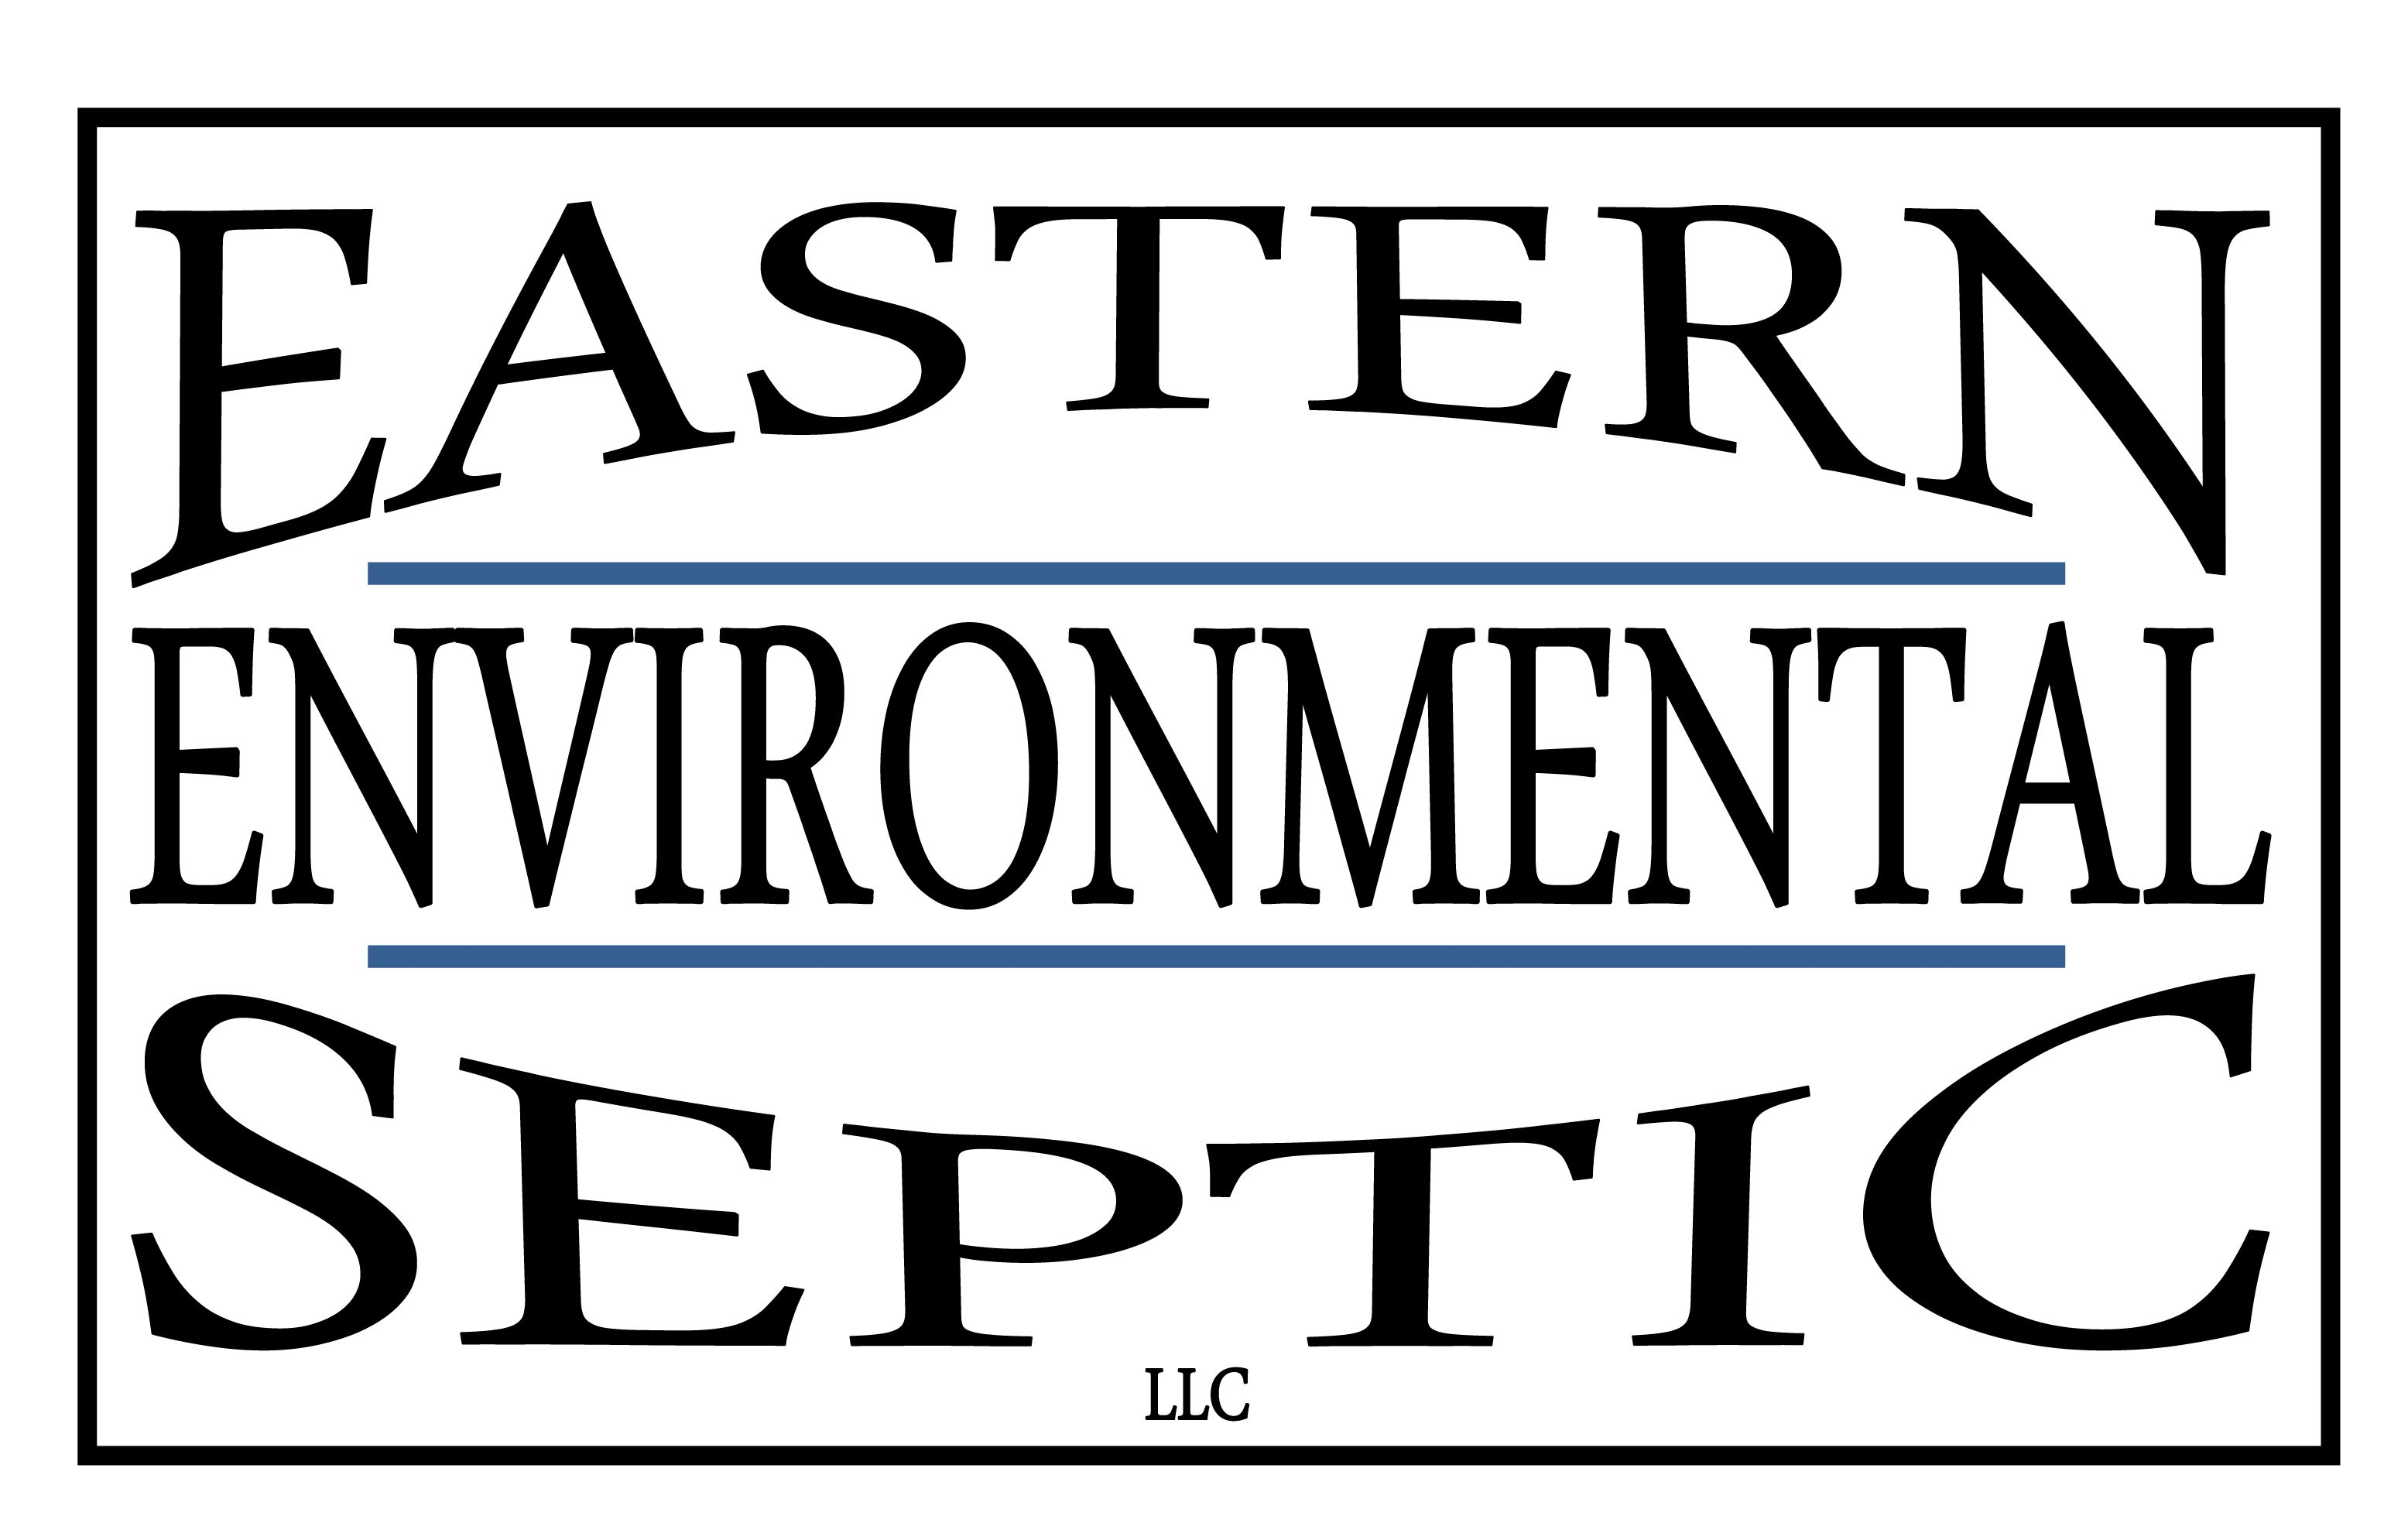 Eastern Environmental Septic LLC